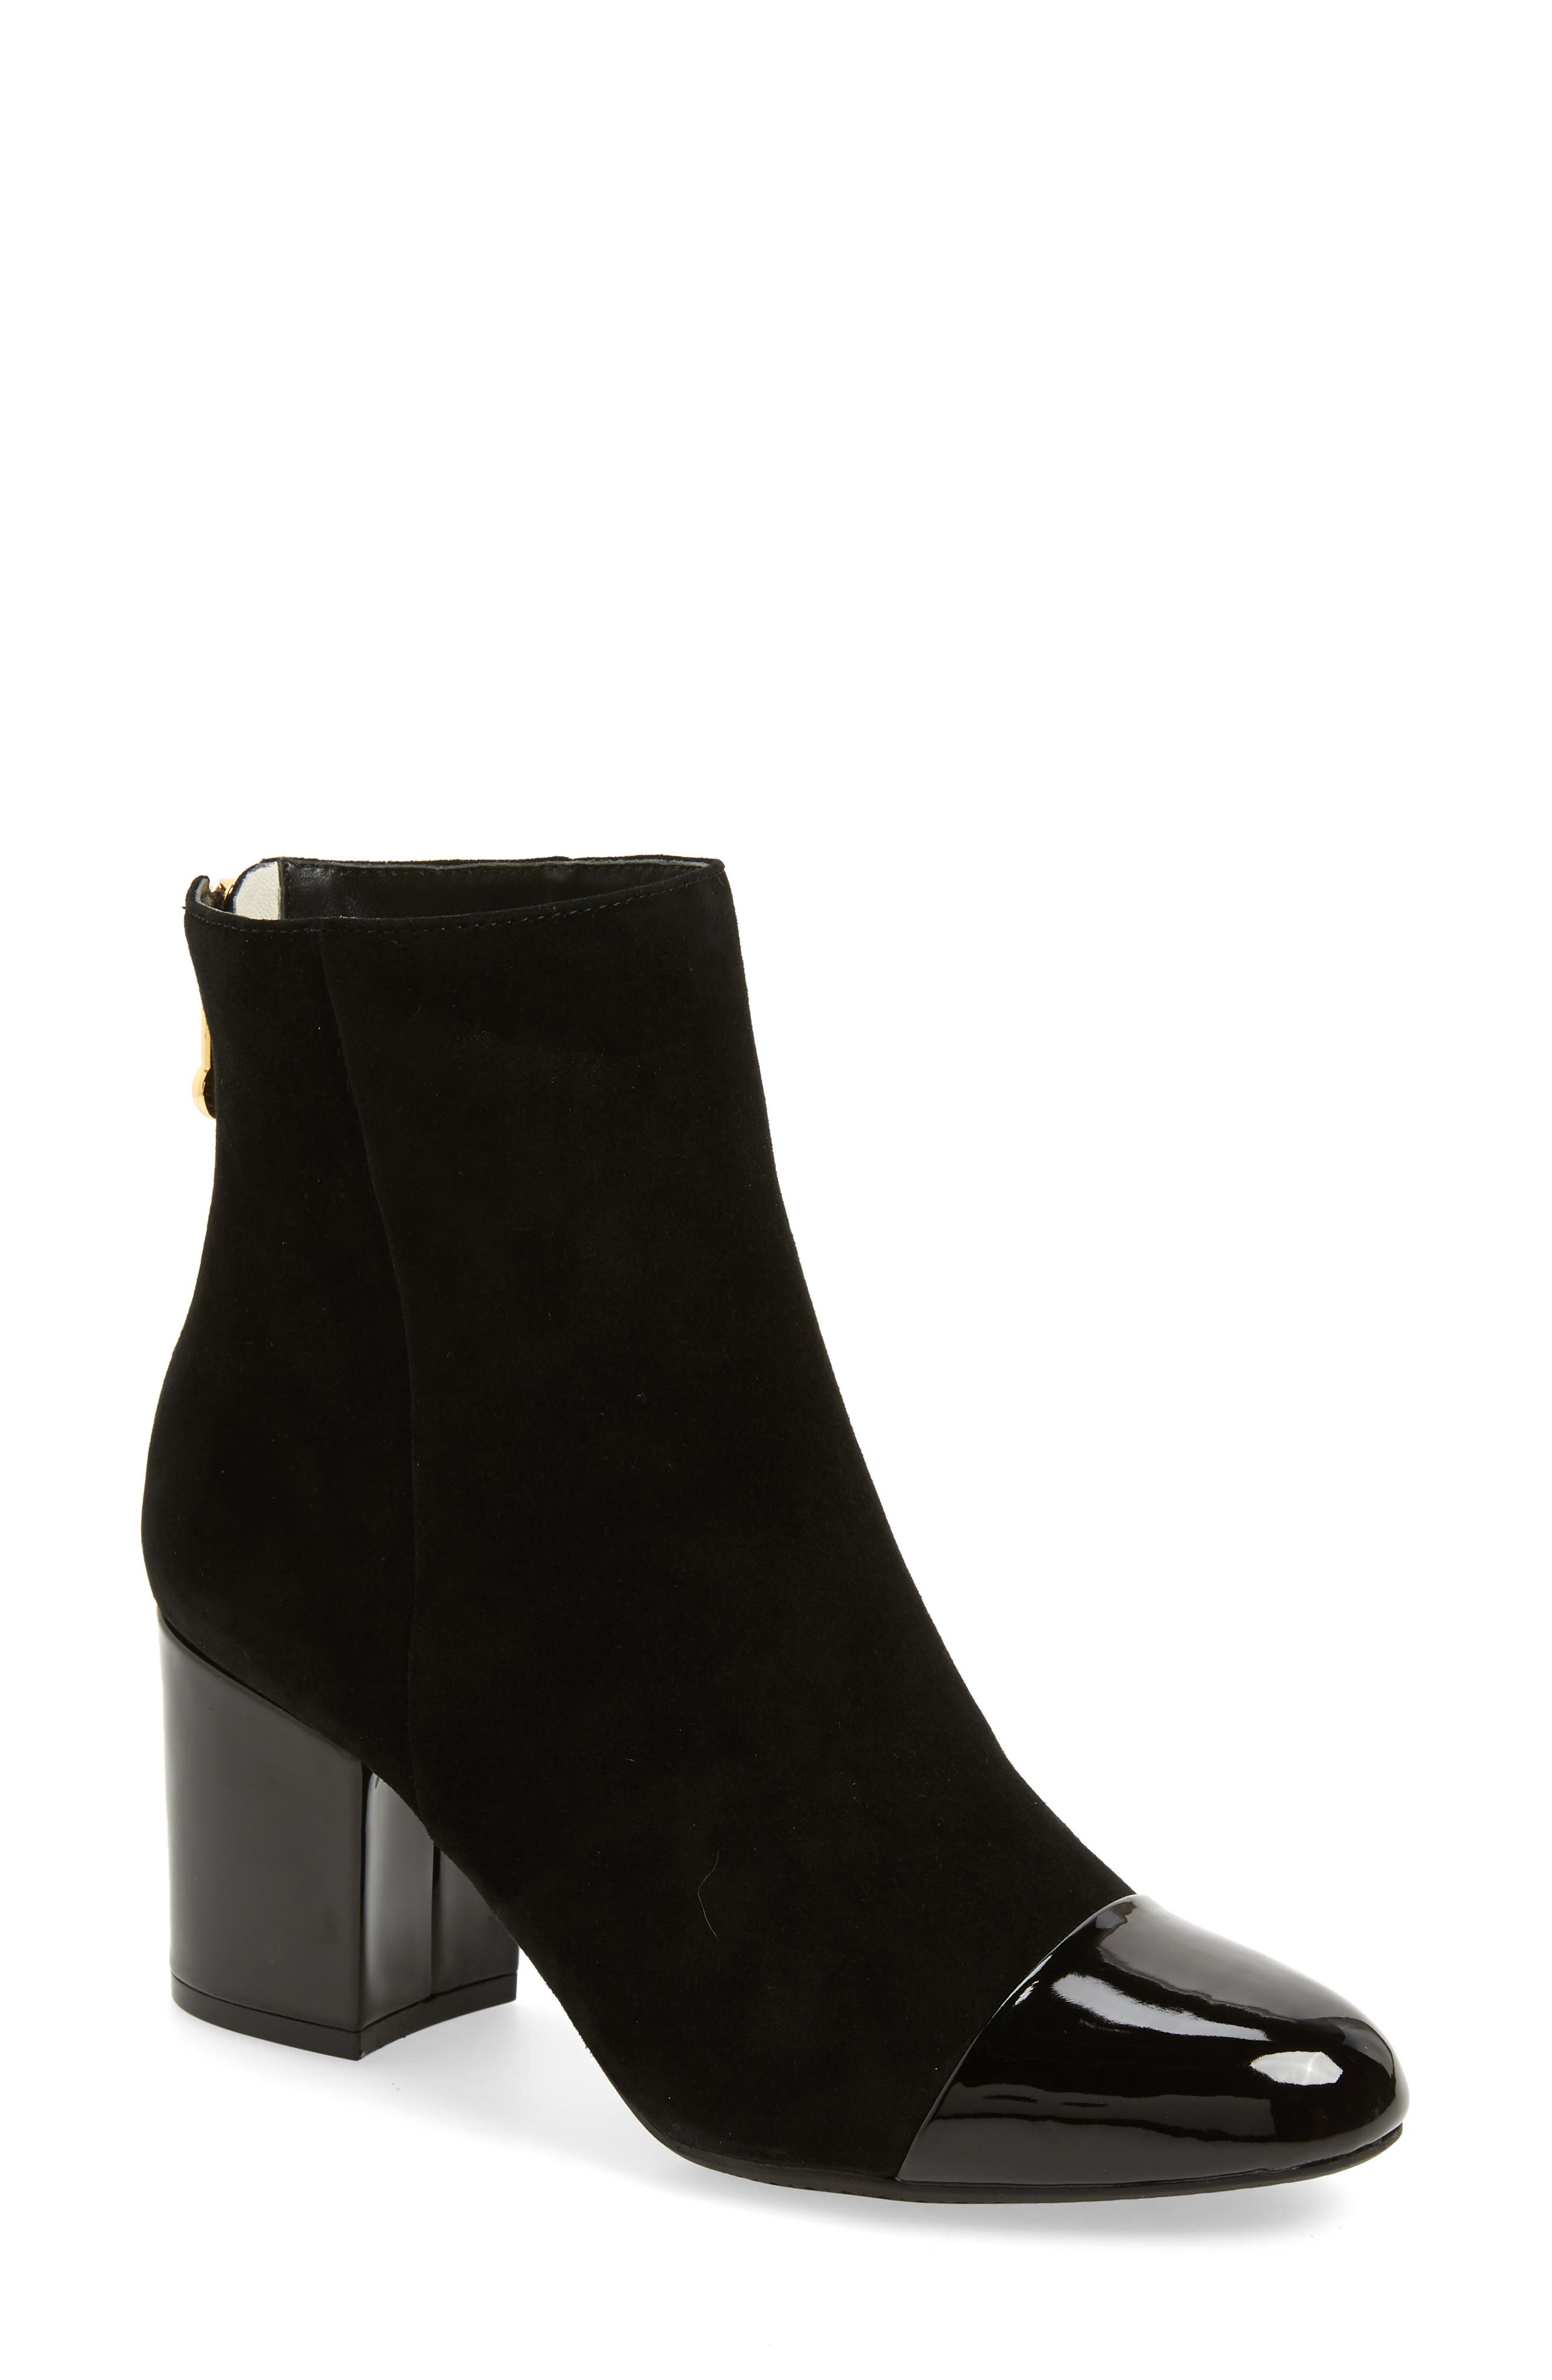 Whitaker Boot,                         Main,                         color, BLACK SUEDE/BLACK PATENT